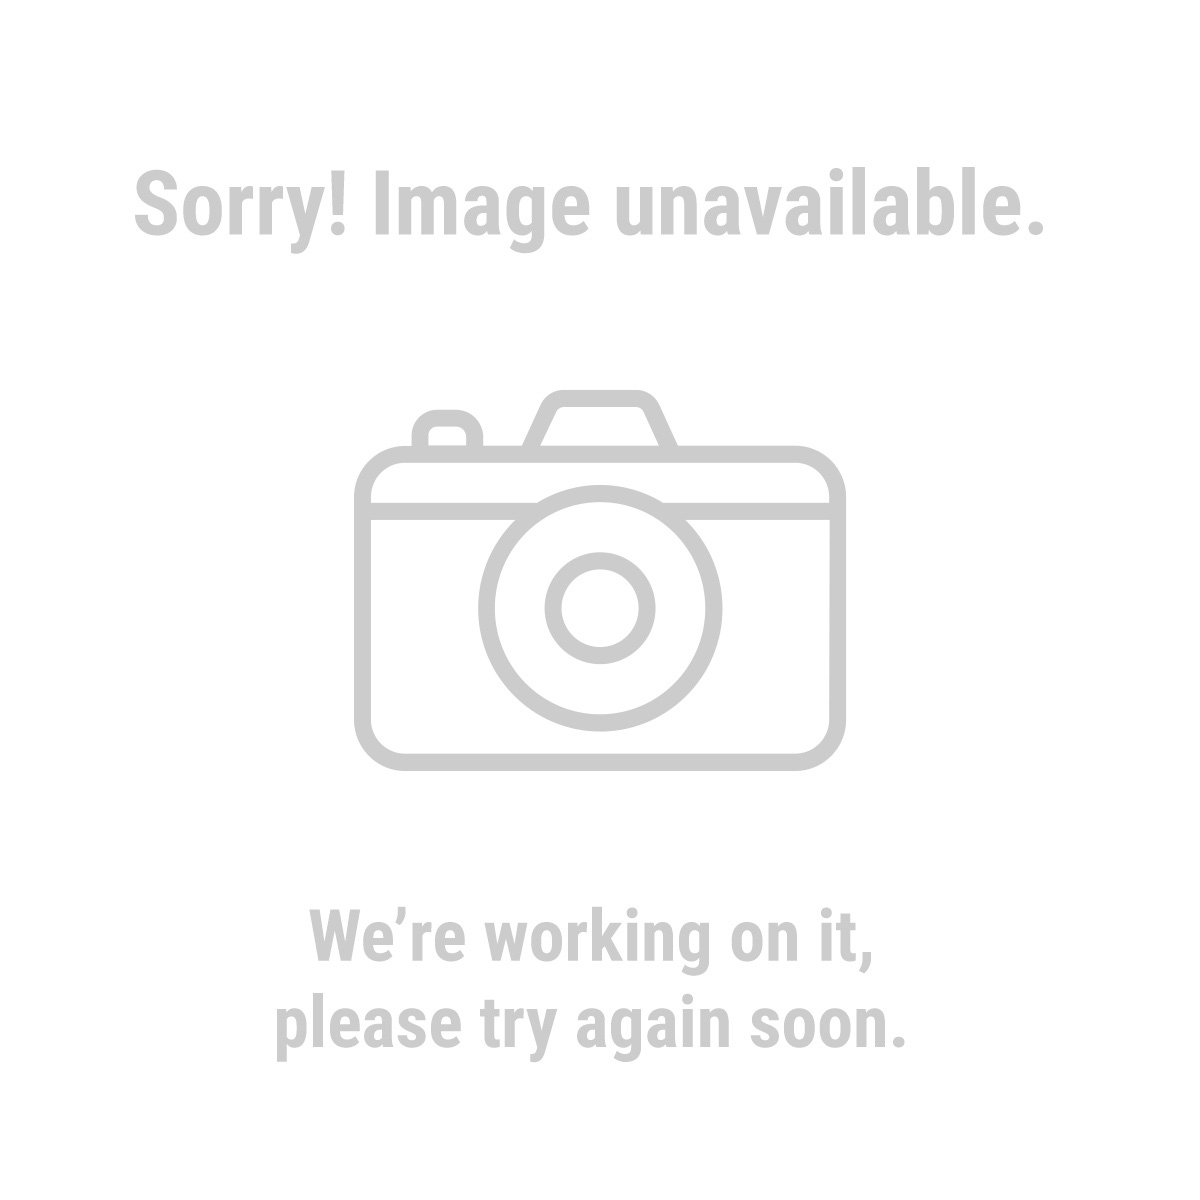 HFT 96709 50 Ft. 12 Gauge Triple Tap Extension Cord with Indicator Light